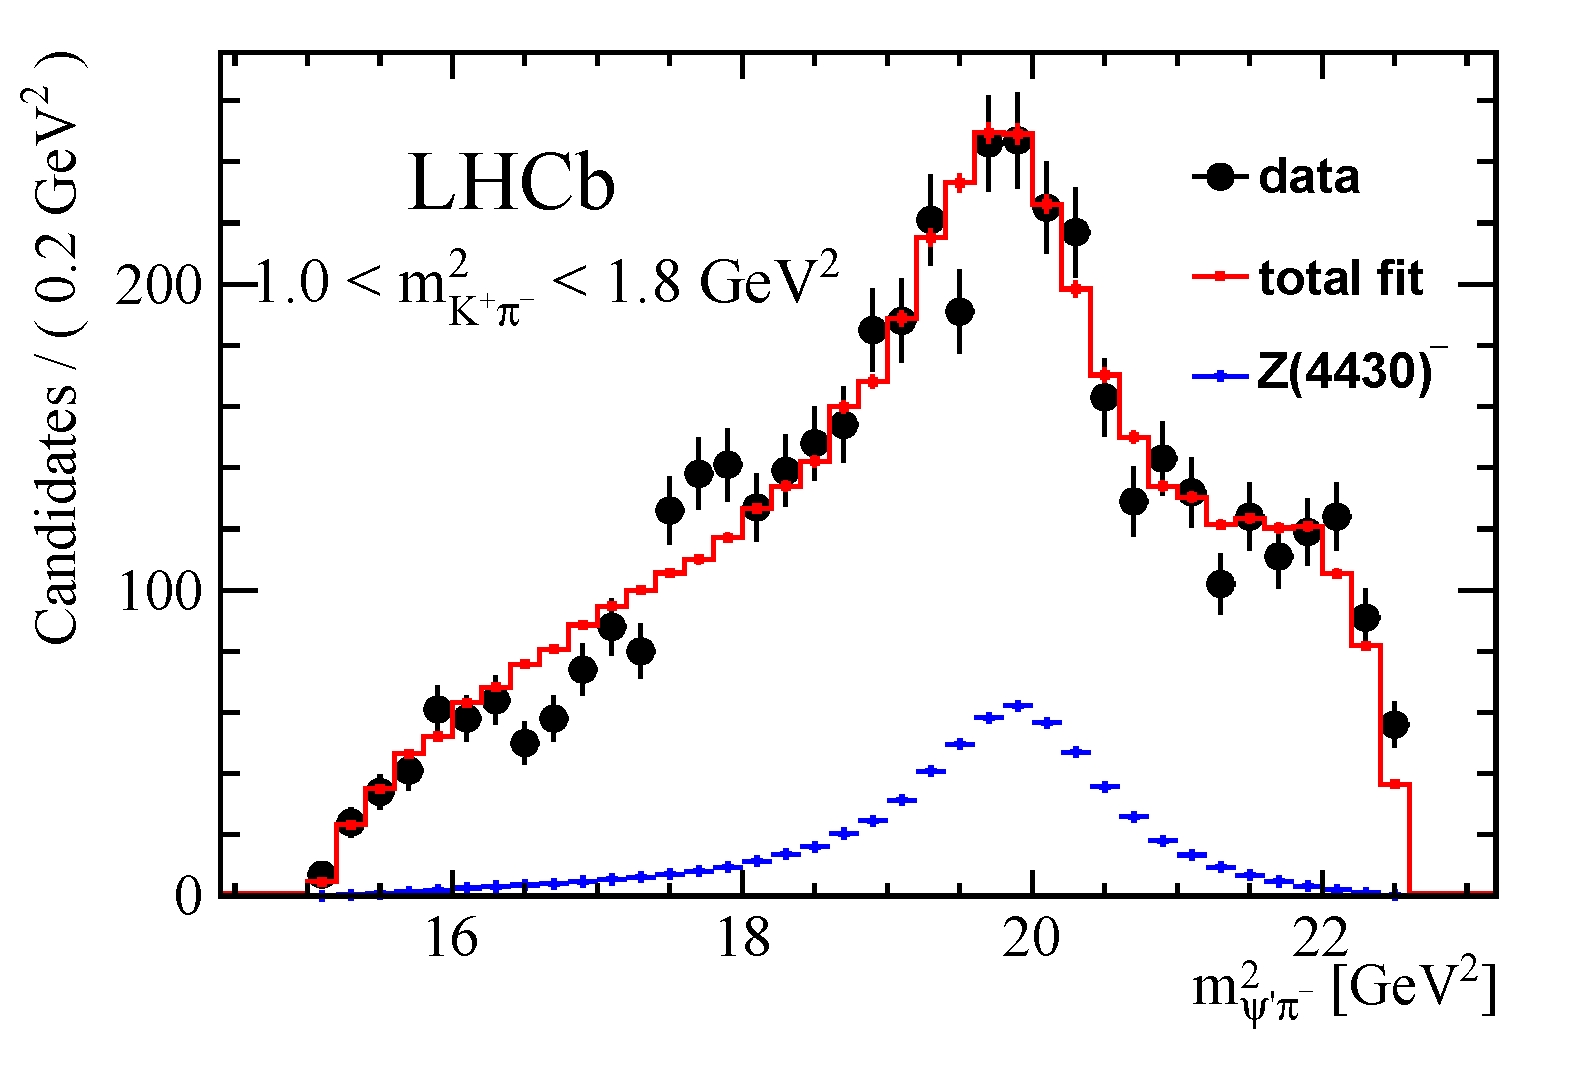 "The figure shows the squared invariant mass of the psi(2S)- system in the selected data sample of B0 -> psi(2S)pi-K+ decays that have been collected by the LHCb experiment. The data is shown by the black points and the result of a ""fit"" of a model to the data is shown by the red line. The exotic Z(4430)- component of this fit is shown in blue. The data is only well described by the model when the exotic Z component is included."